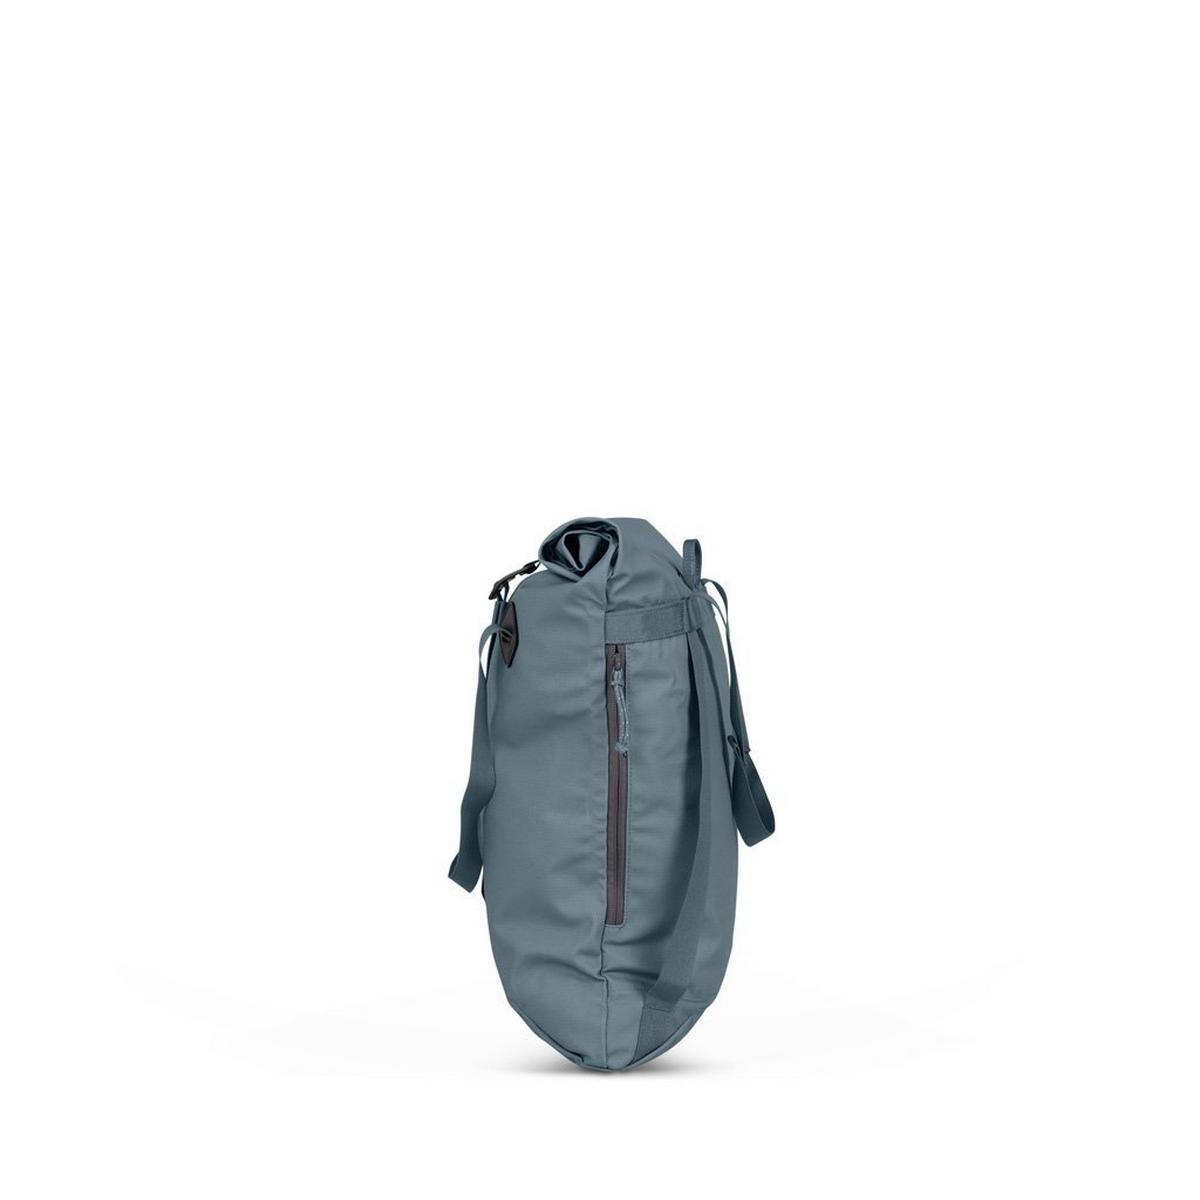 Millican Travel Bag Tinsley the Tote Pack 14L Tarn